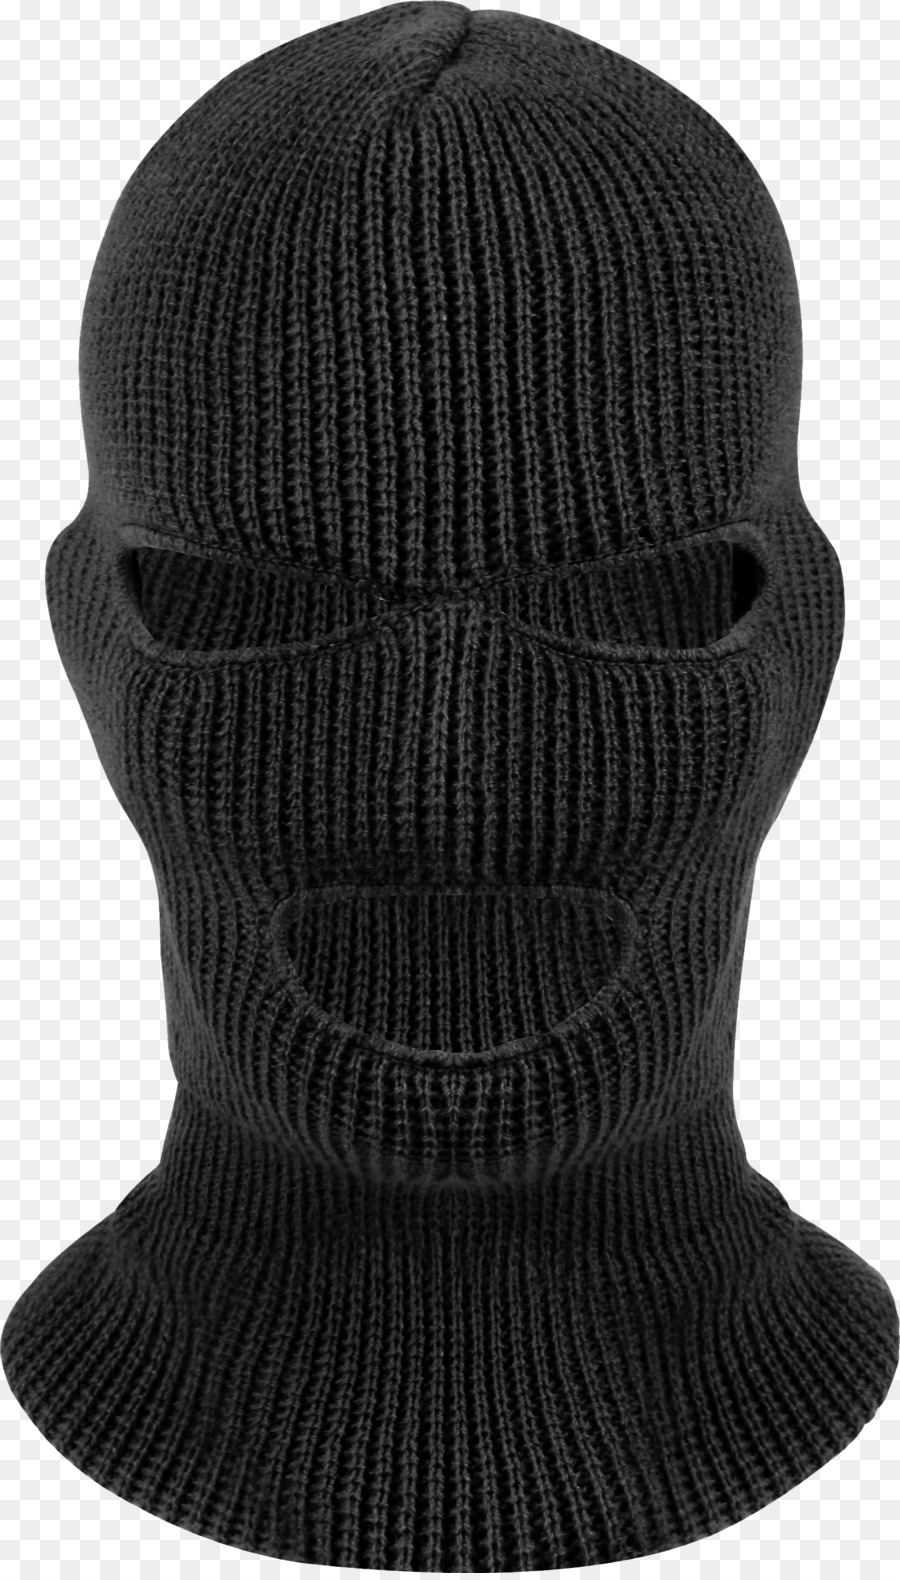 Balaclava Mask Knit cap - Brown mask png download - 1599*2794 - Free ...